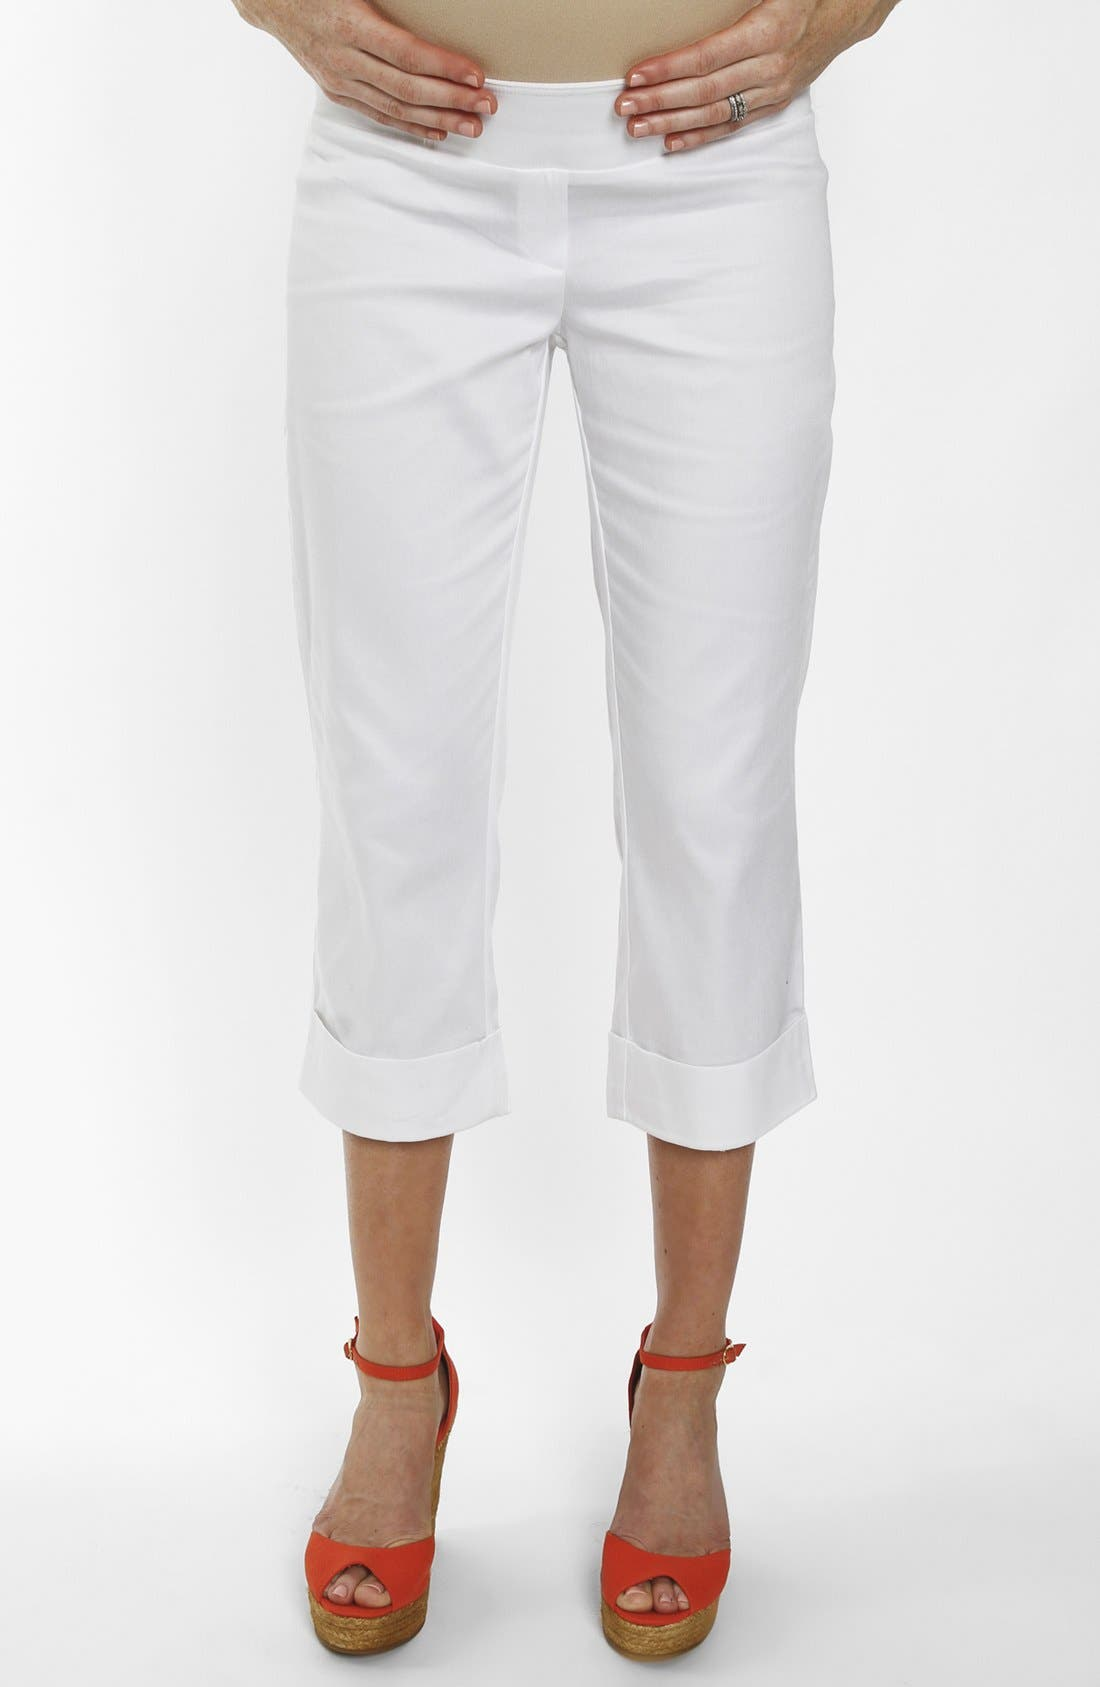 Alternate Image 1 Selected - Everly Grey 'Carrie' Cropped Maternity Pants